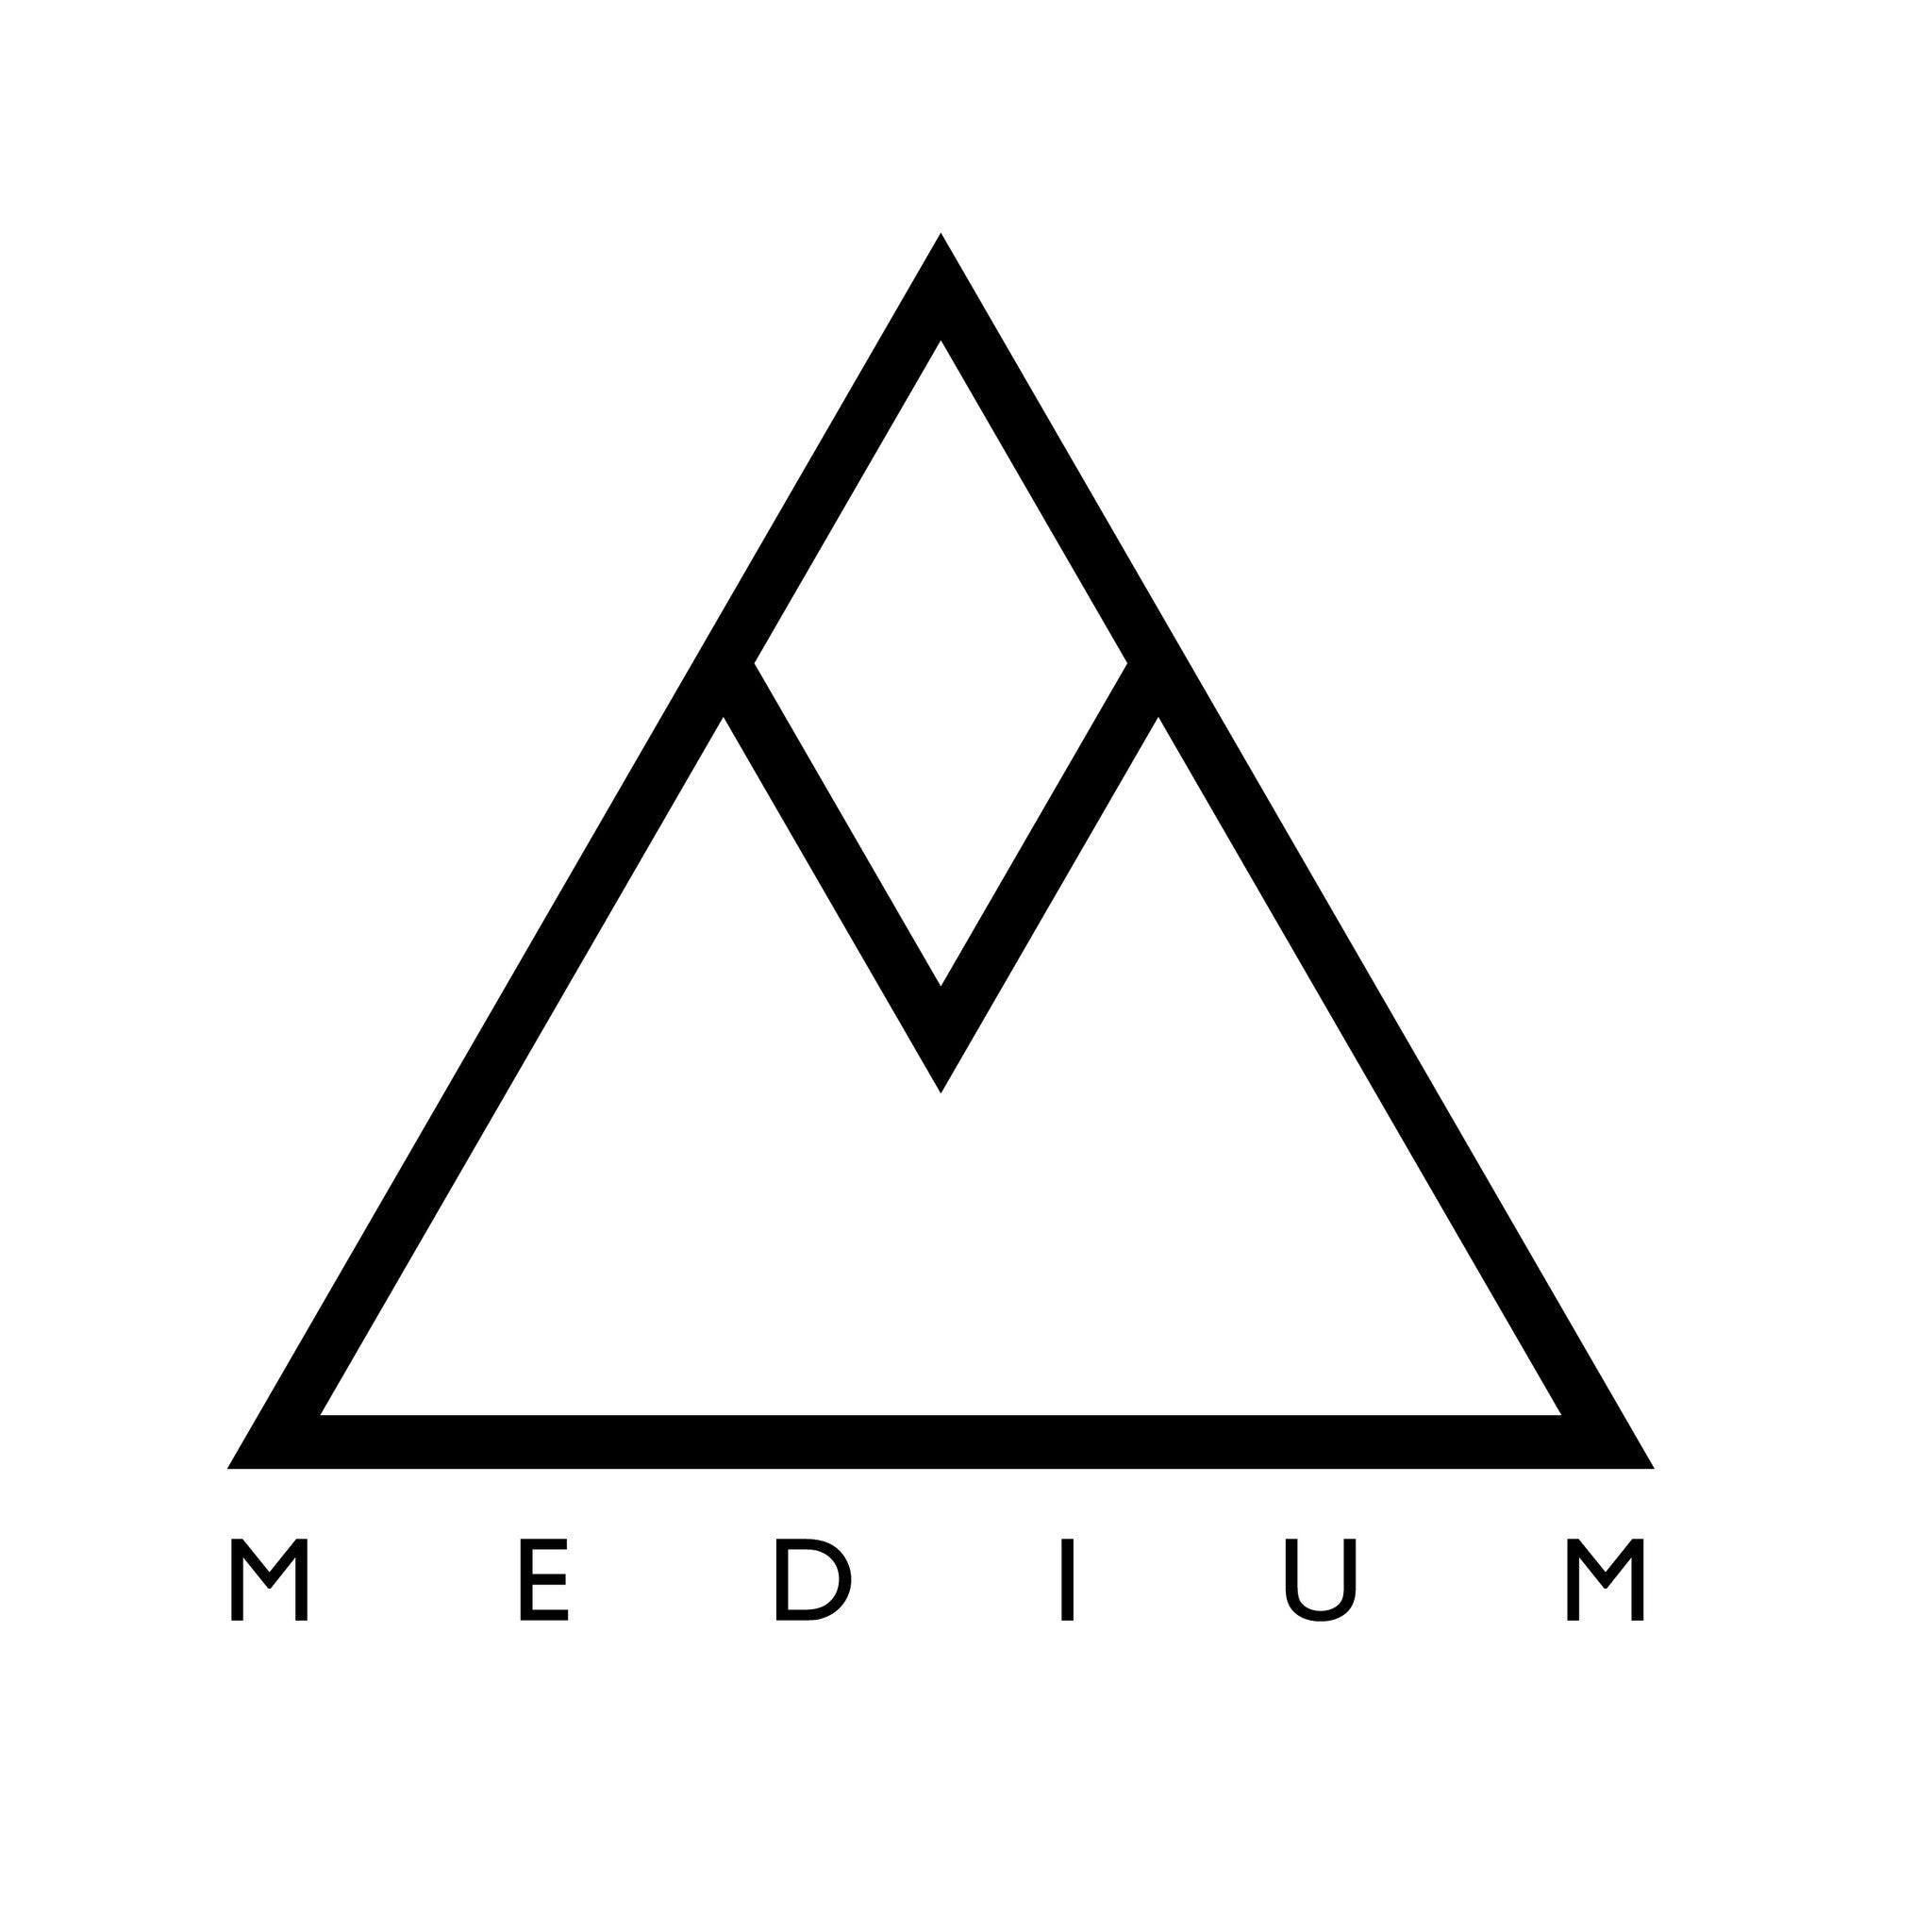 MEDIUM Watch Co. Starts to Take Shape